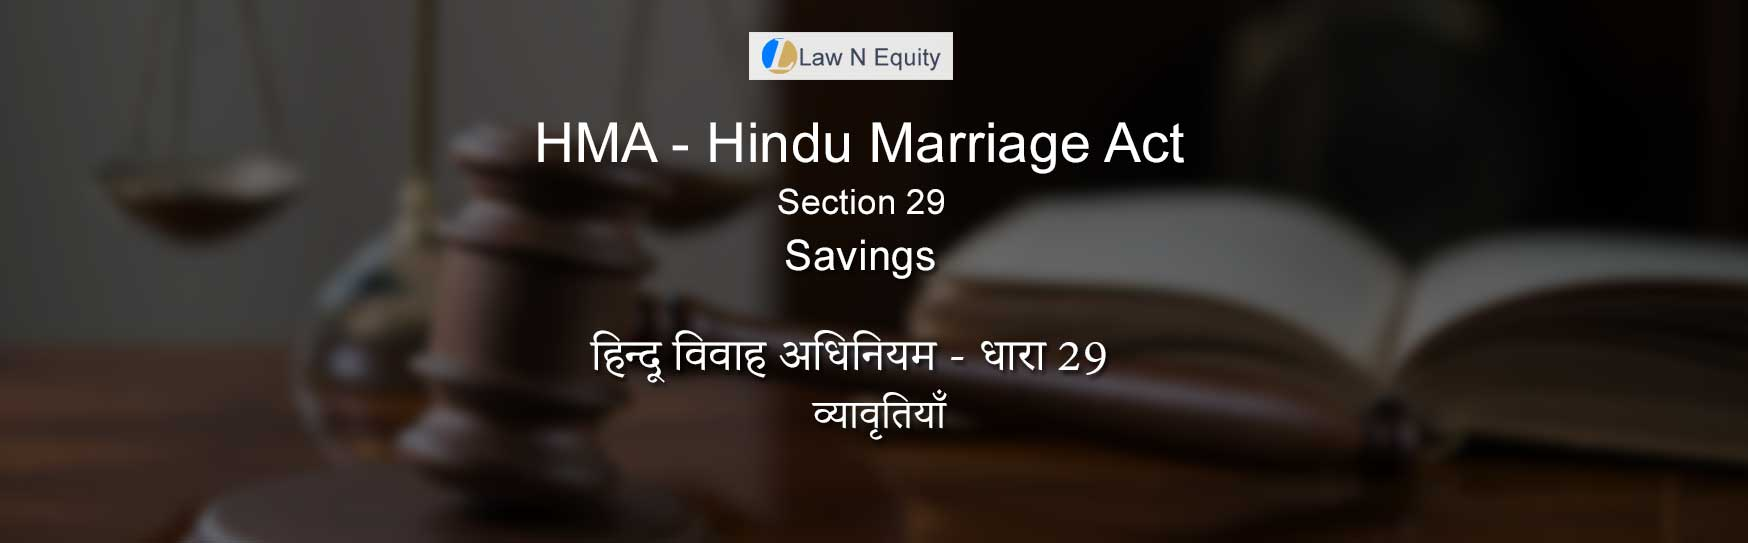 Hindu Marriage Act(HMA) Section 29